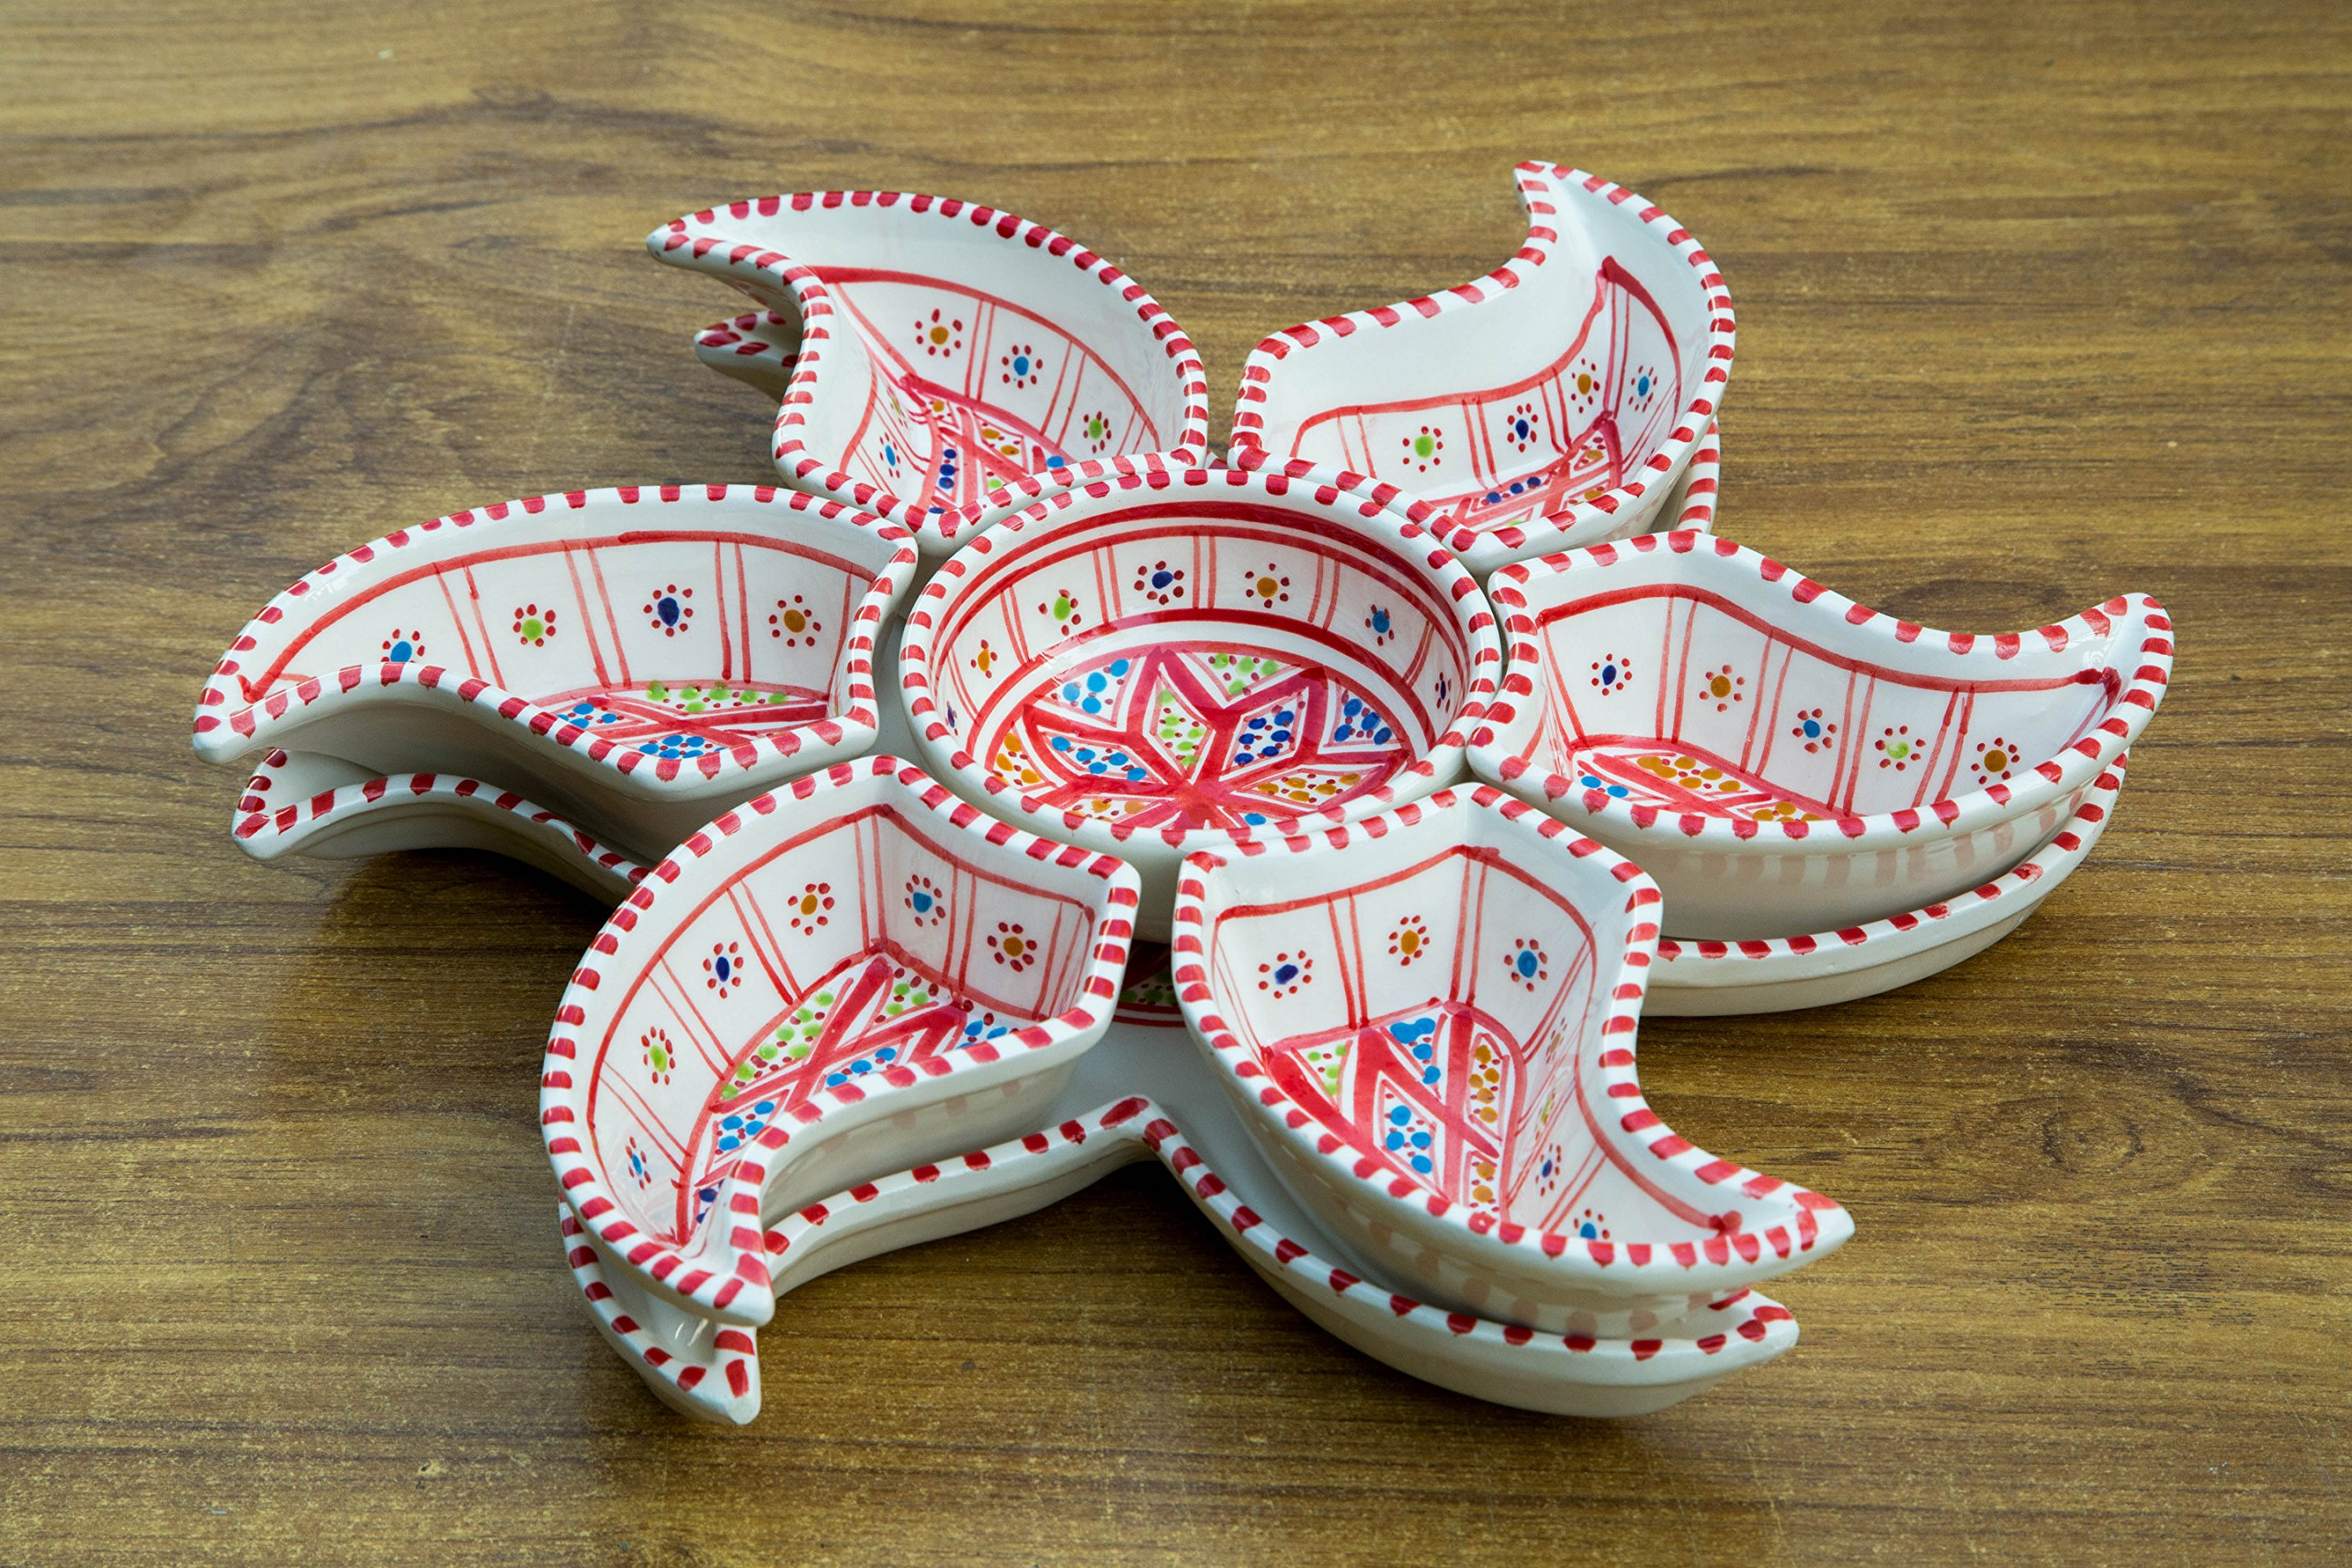 Large Red Sun Dippers, 8 Pieces of Ceramic Dipping and Serving Plates Handmade, Hand-painted - Gifts, Wedding Gifts Birthday Celebration and Housewarming Gifts